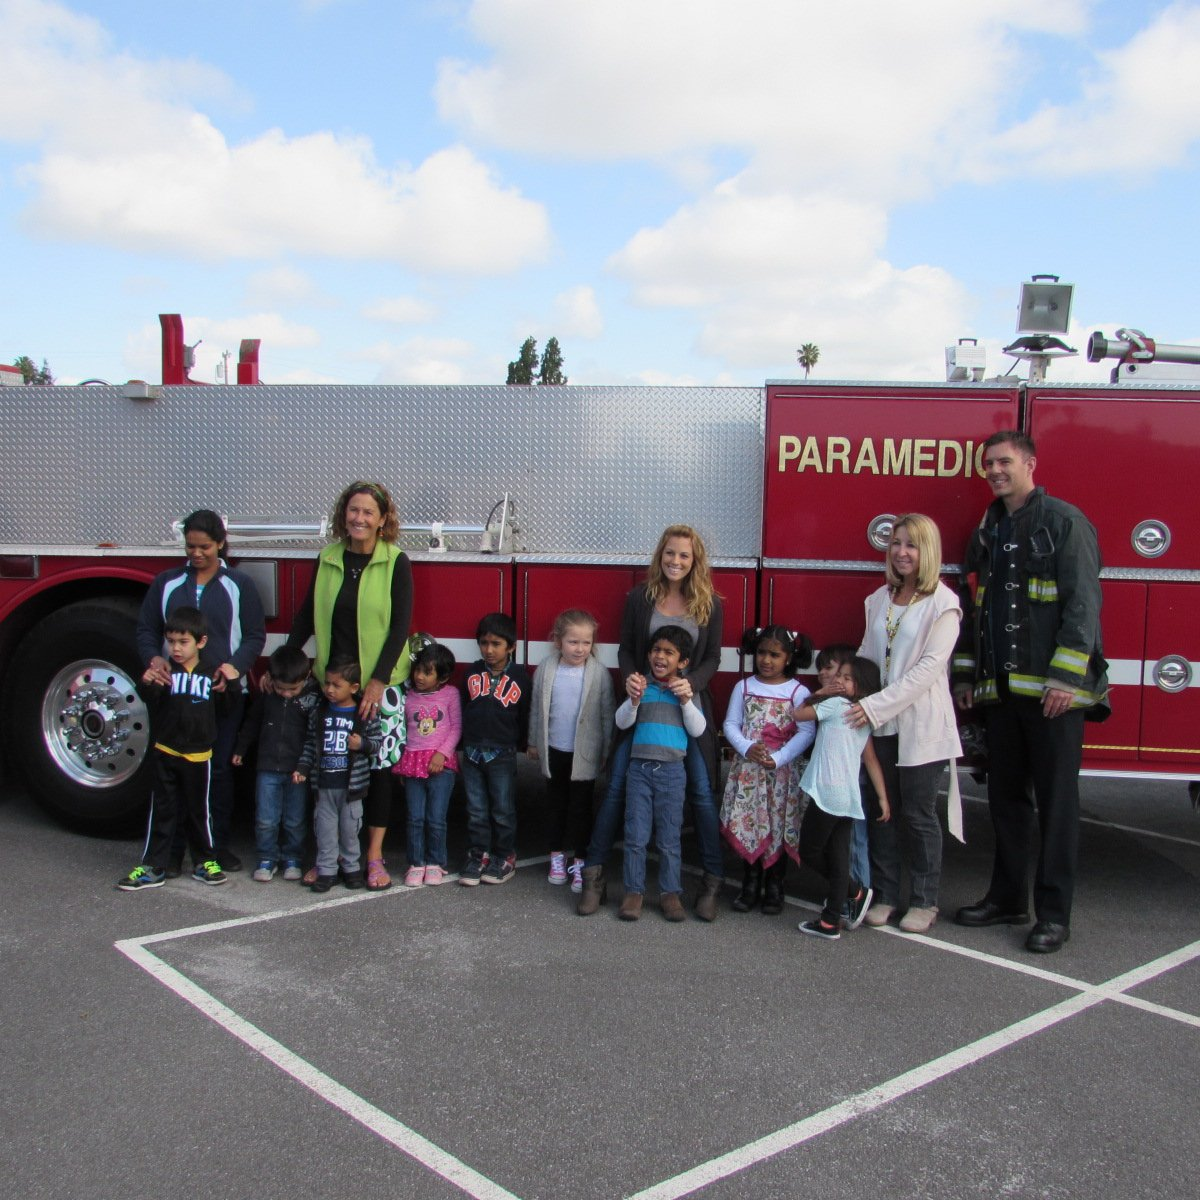 fremont usd on twitter the fremontfire visit to glankler early